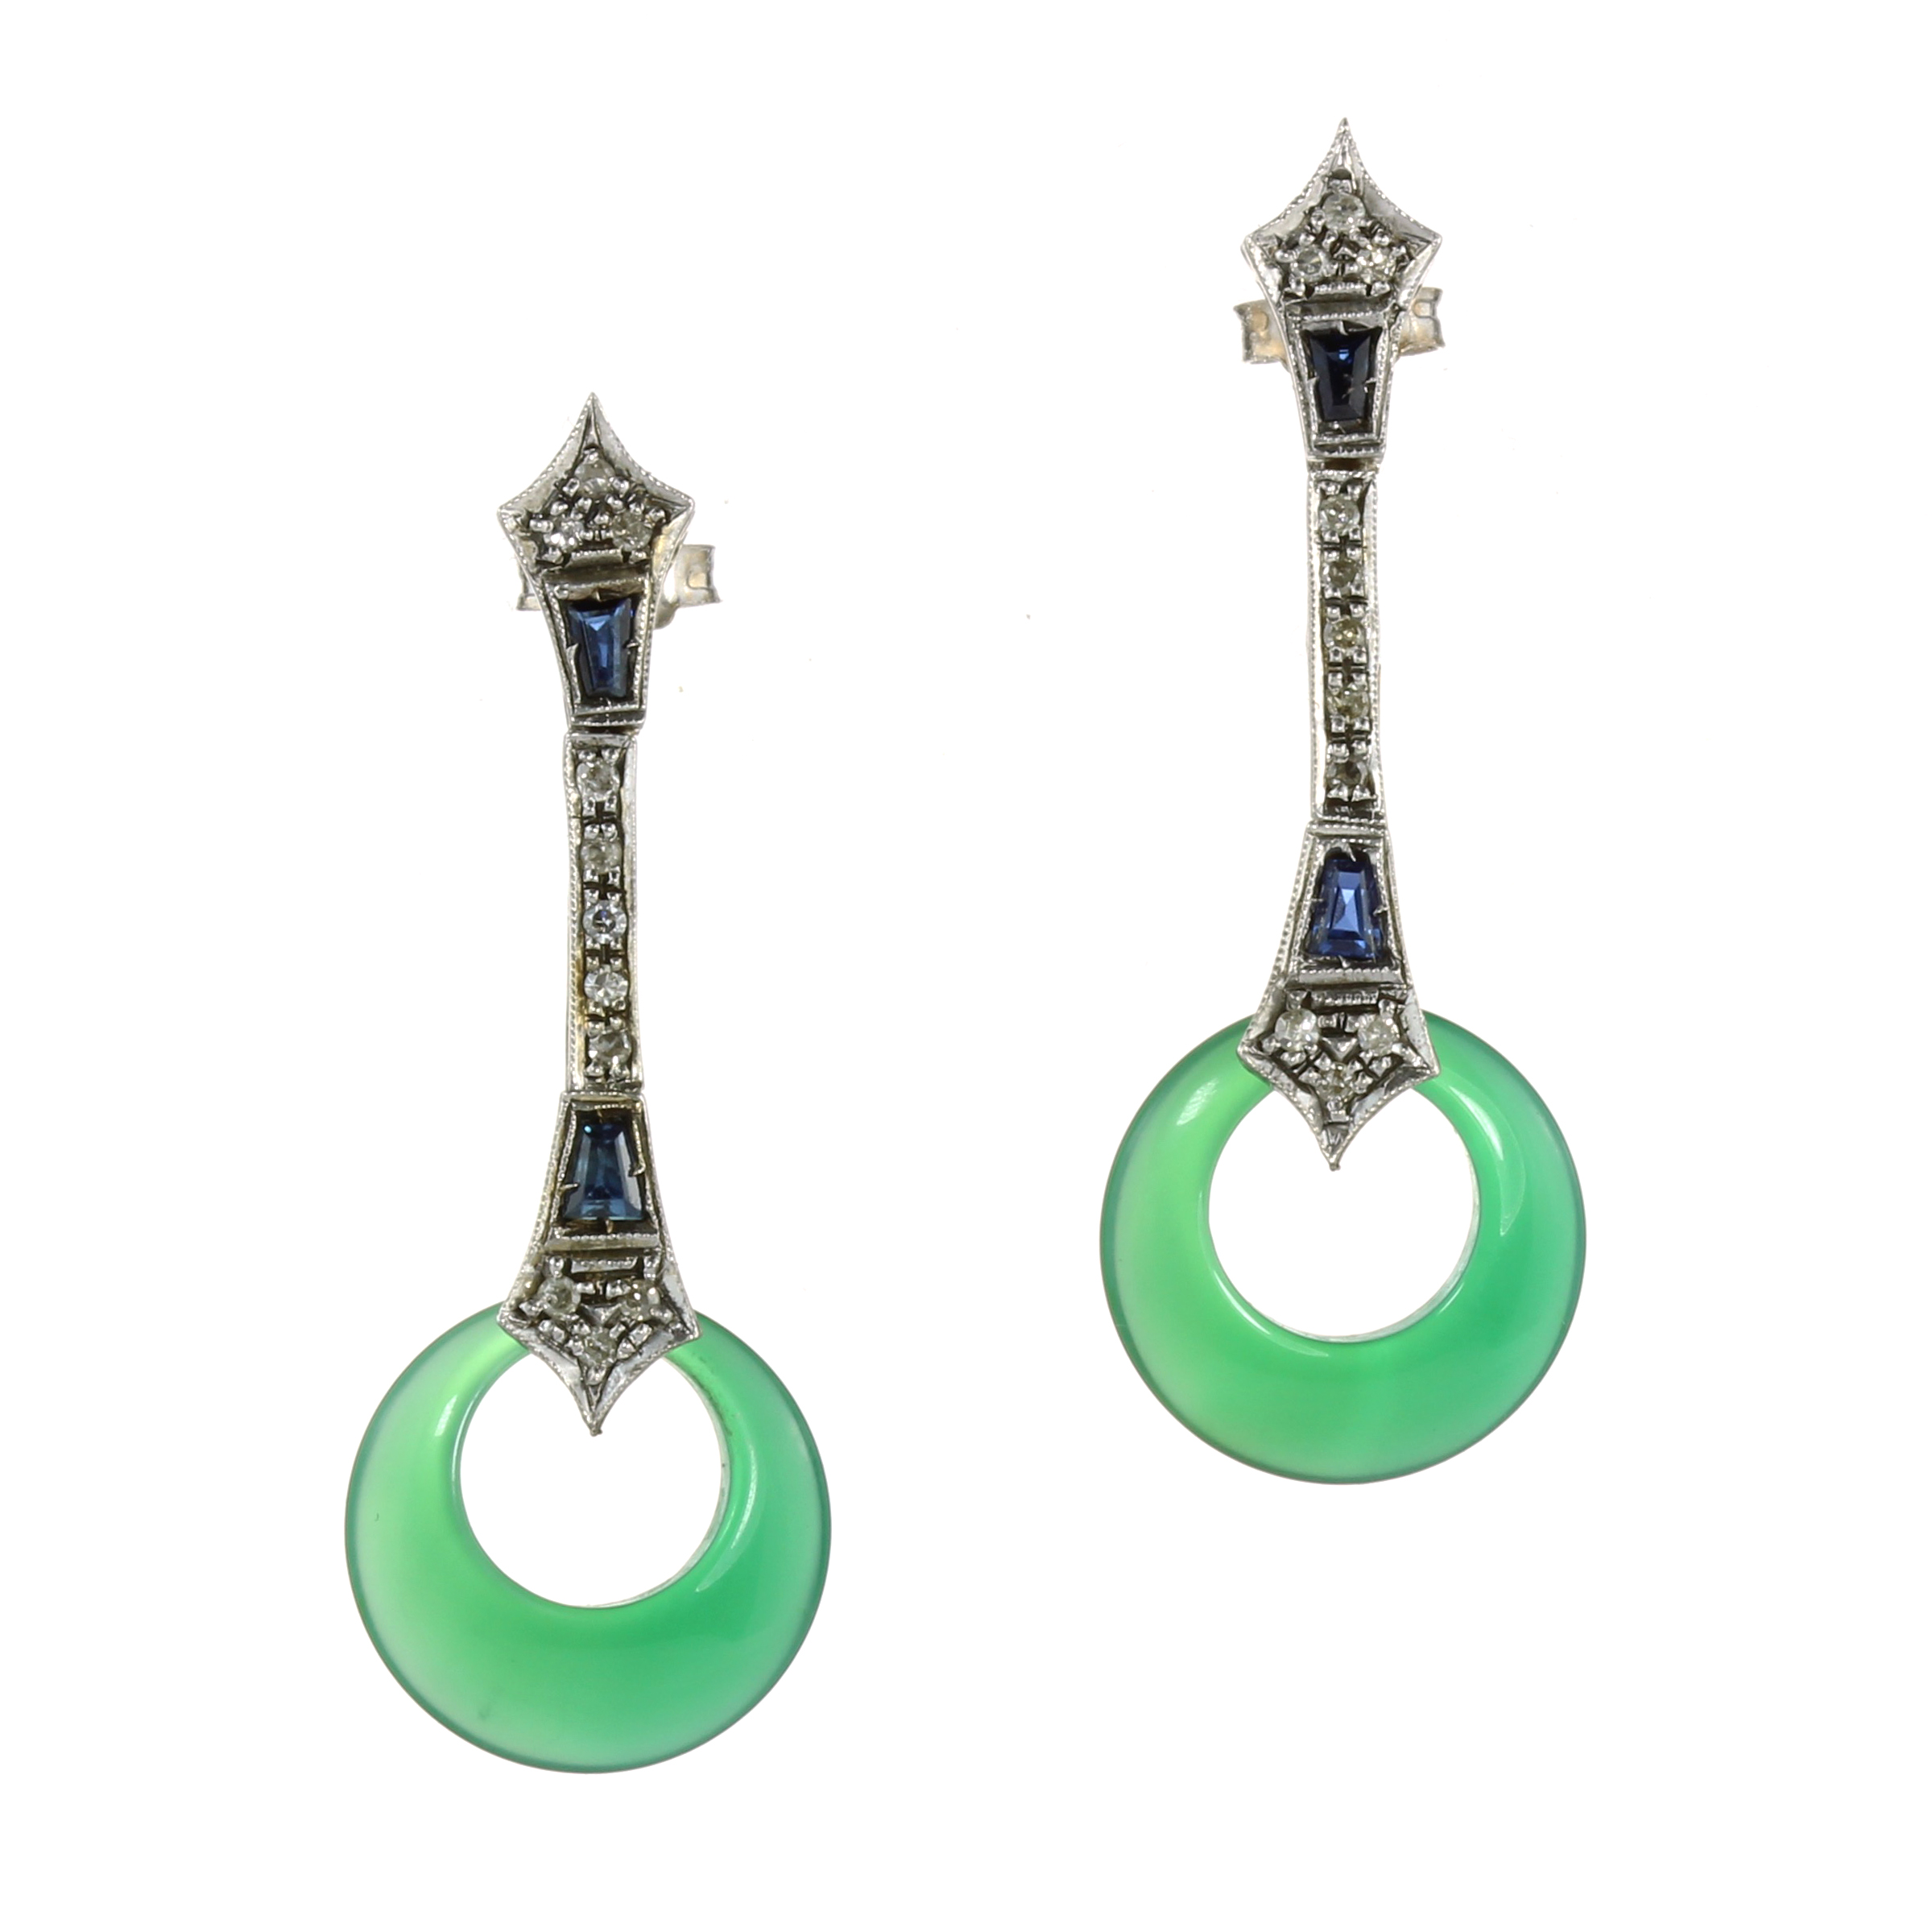 A PAIR OF ANTIQUE ART DECO JADE, SAPPHIRE AND DIAMOND EARRINGS in white gold or platinum, set with a